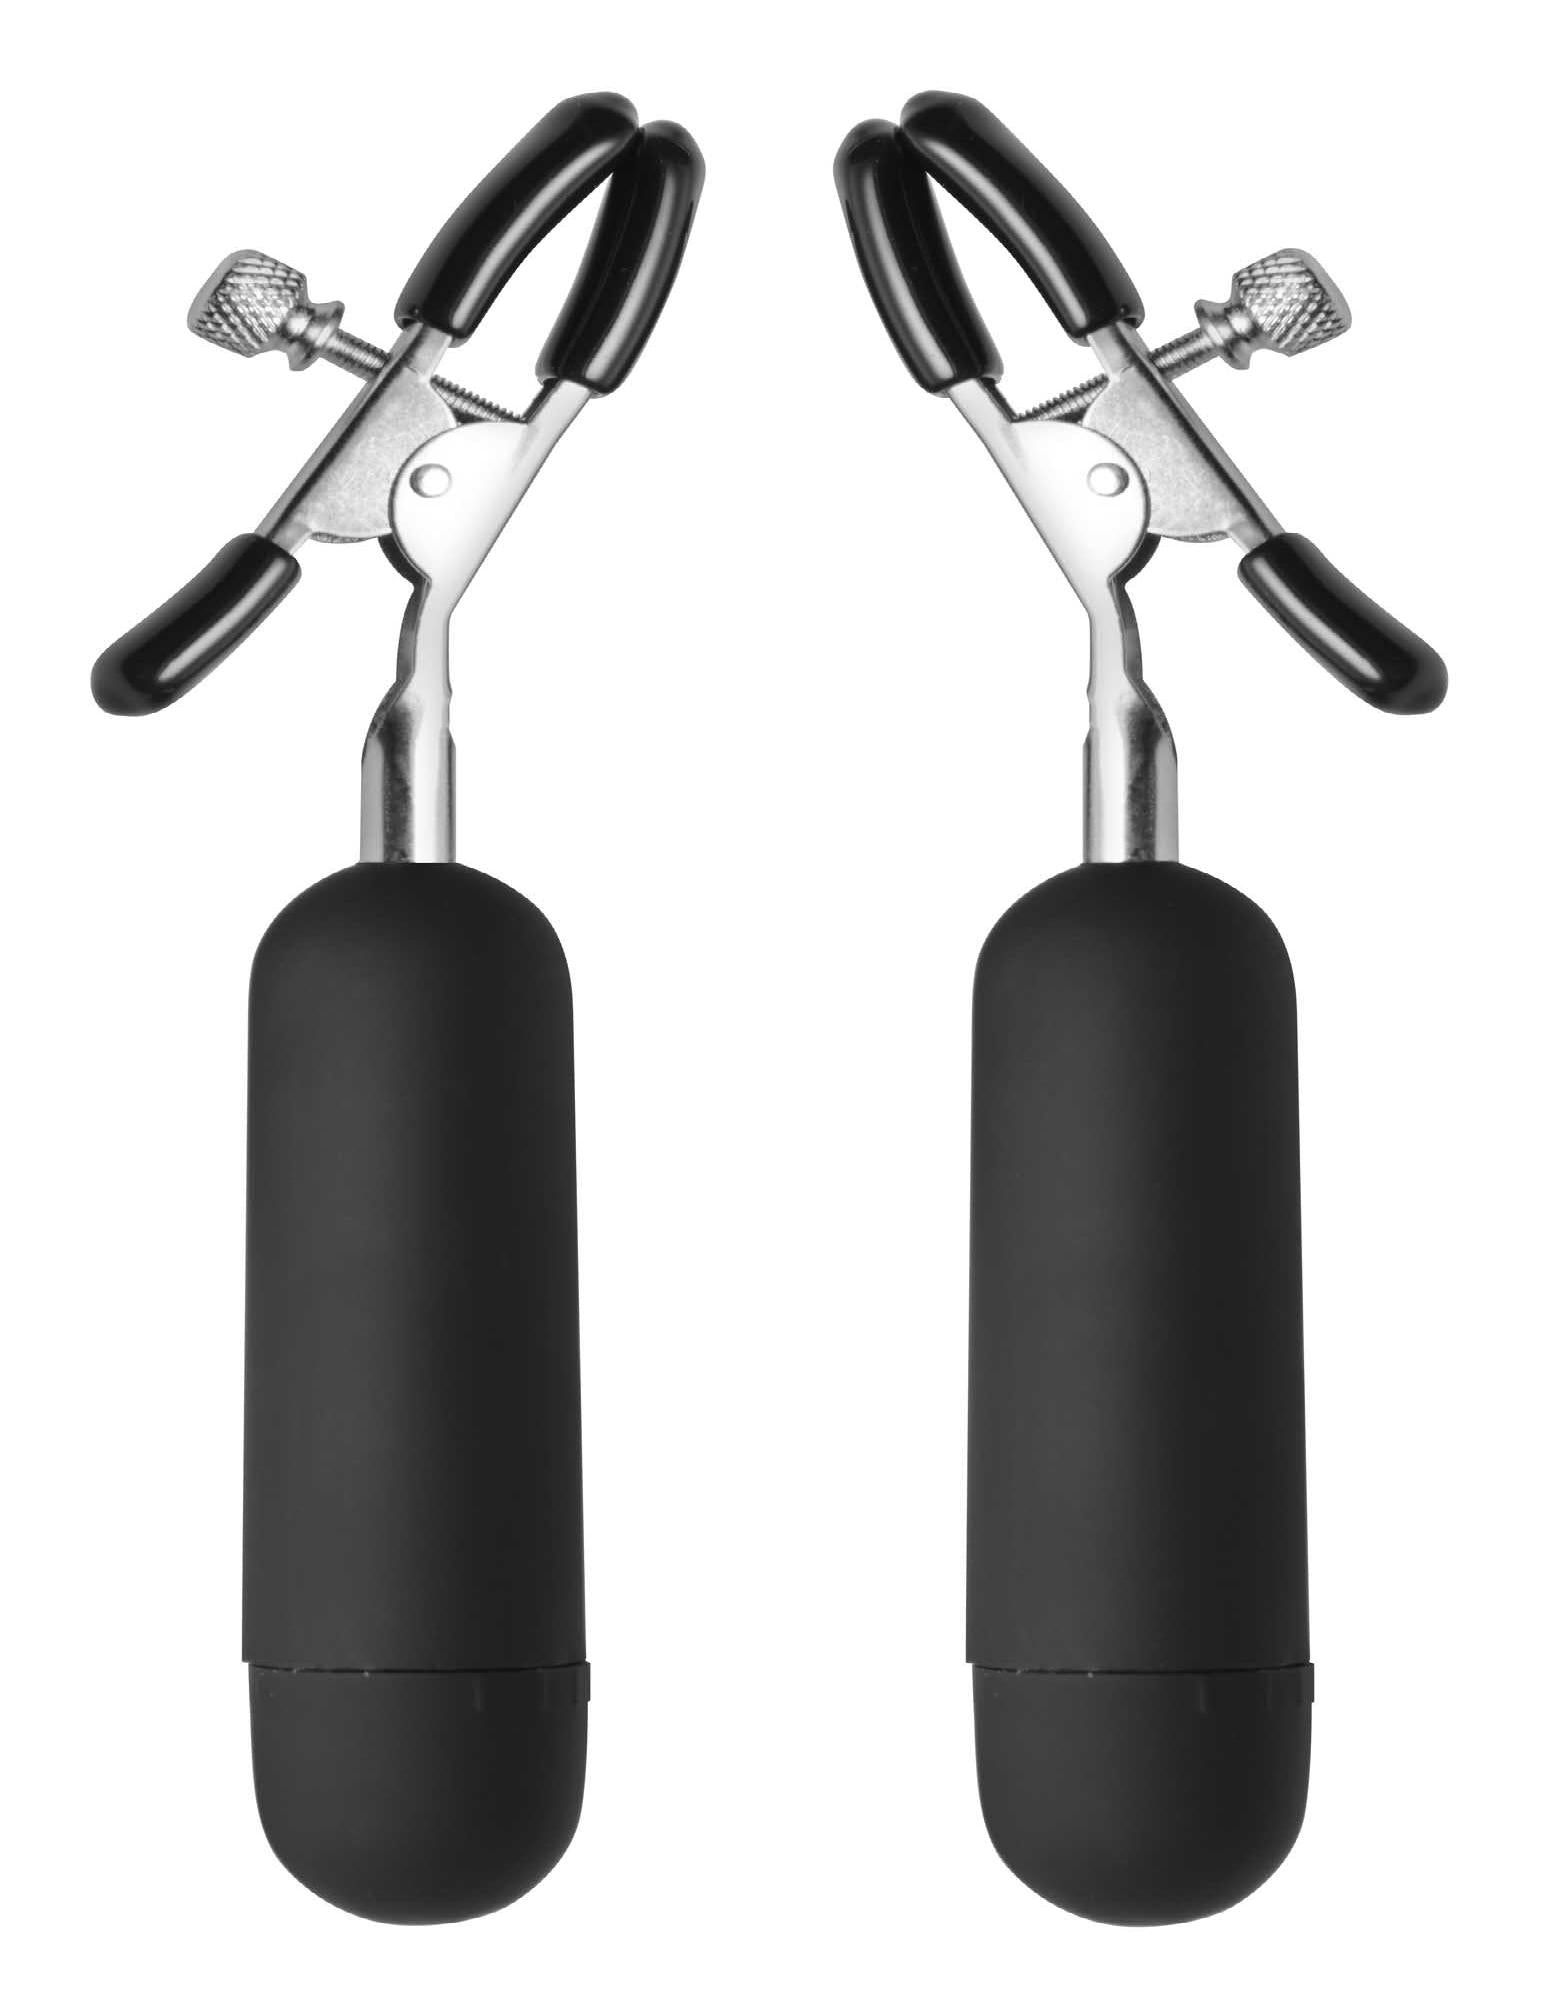 Dark Passion Vibrating Nipple Clamps